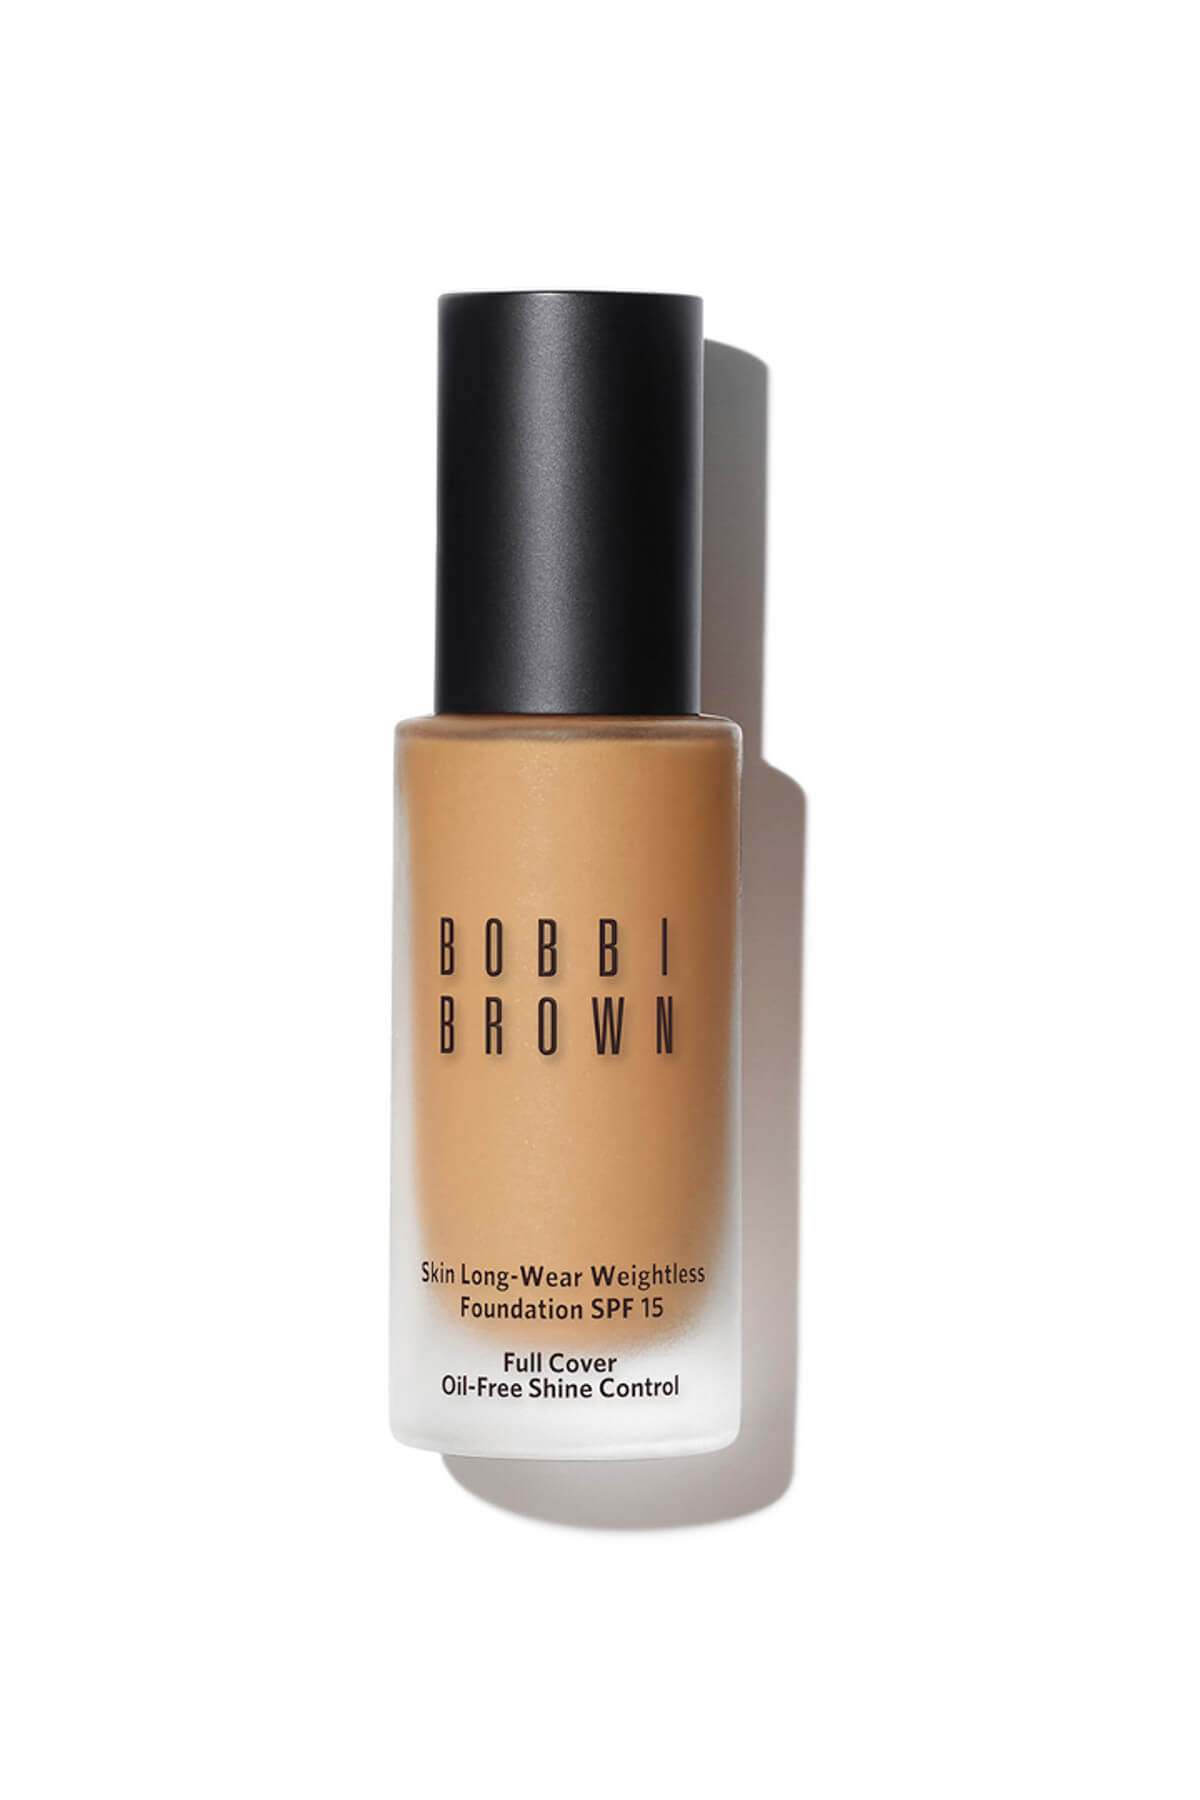 Bobbi Brown 芭比波朗清透持妆粉底液 3号 Beige